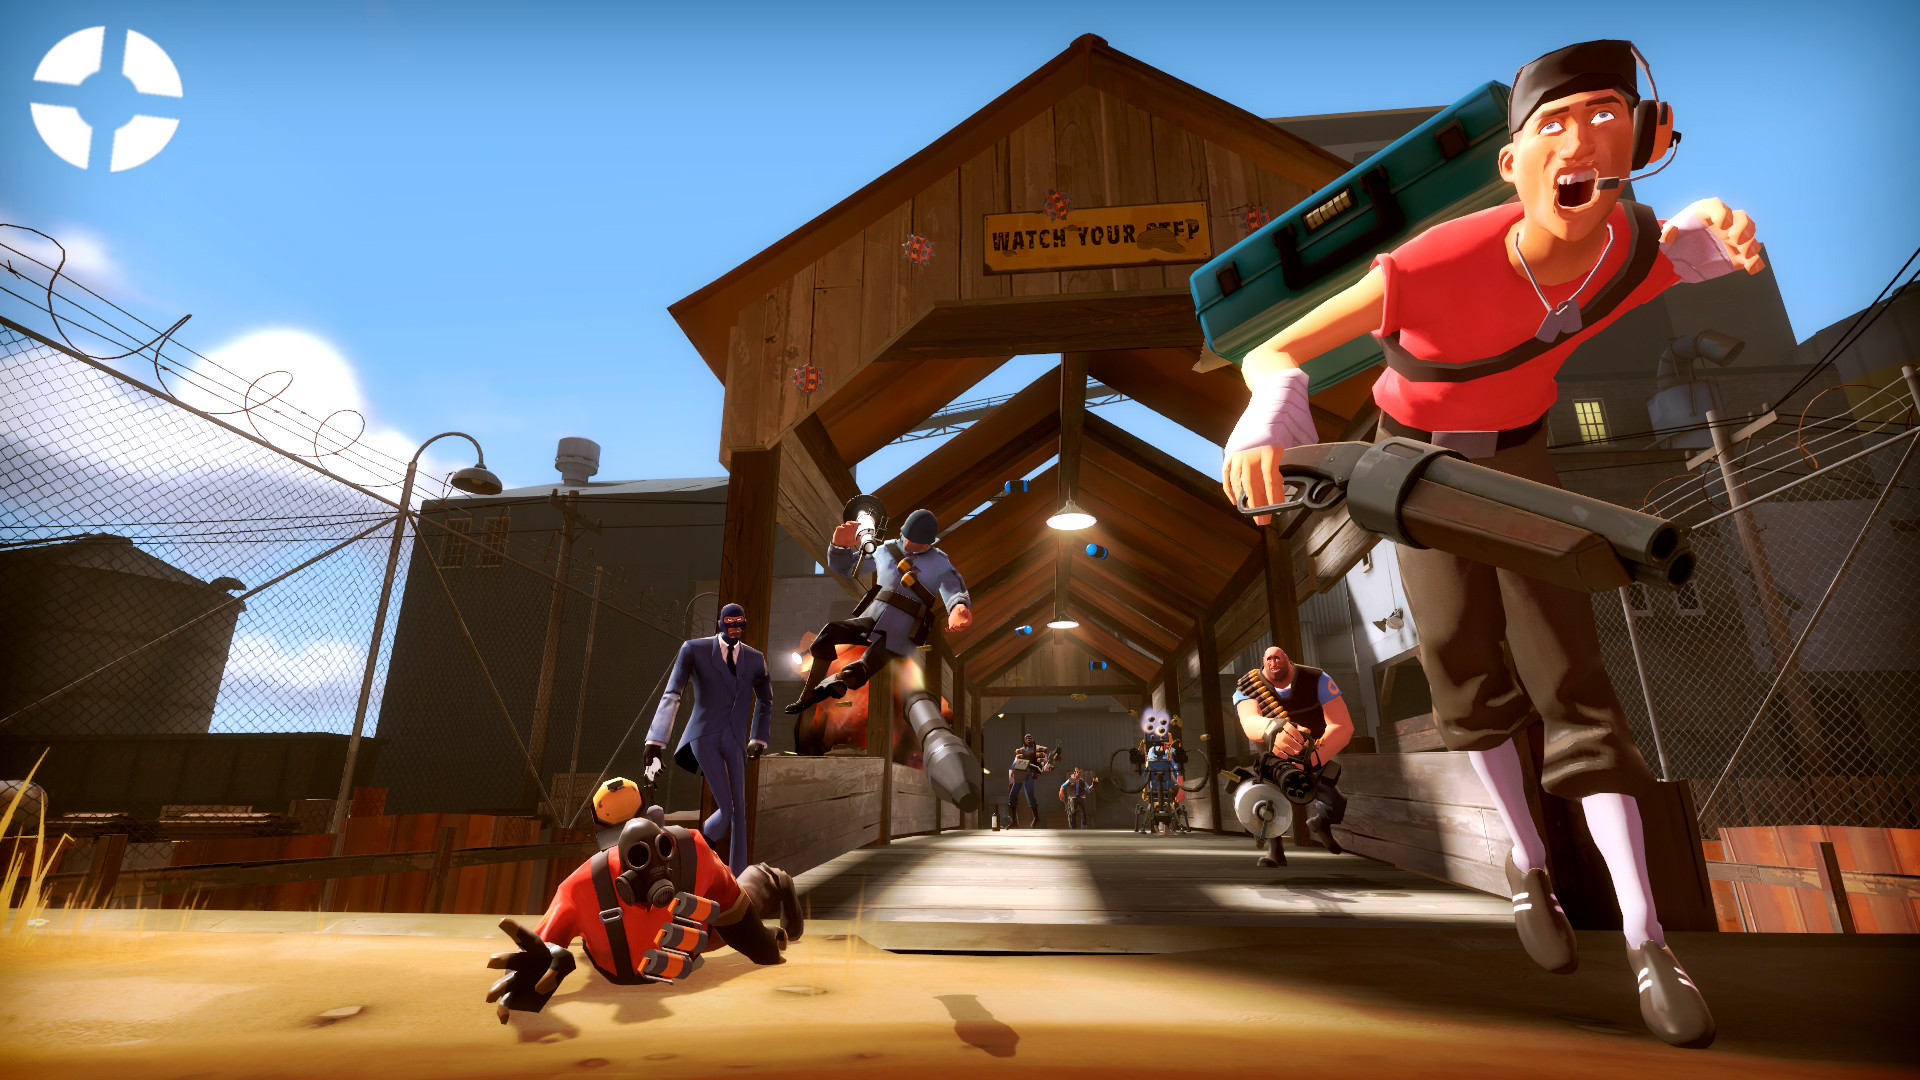 Res: 1920x1080, First Ever TF2 Wallpaper I've made using Garrys Mod. Opinions?